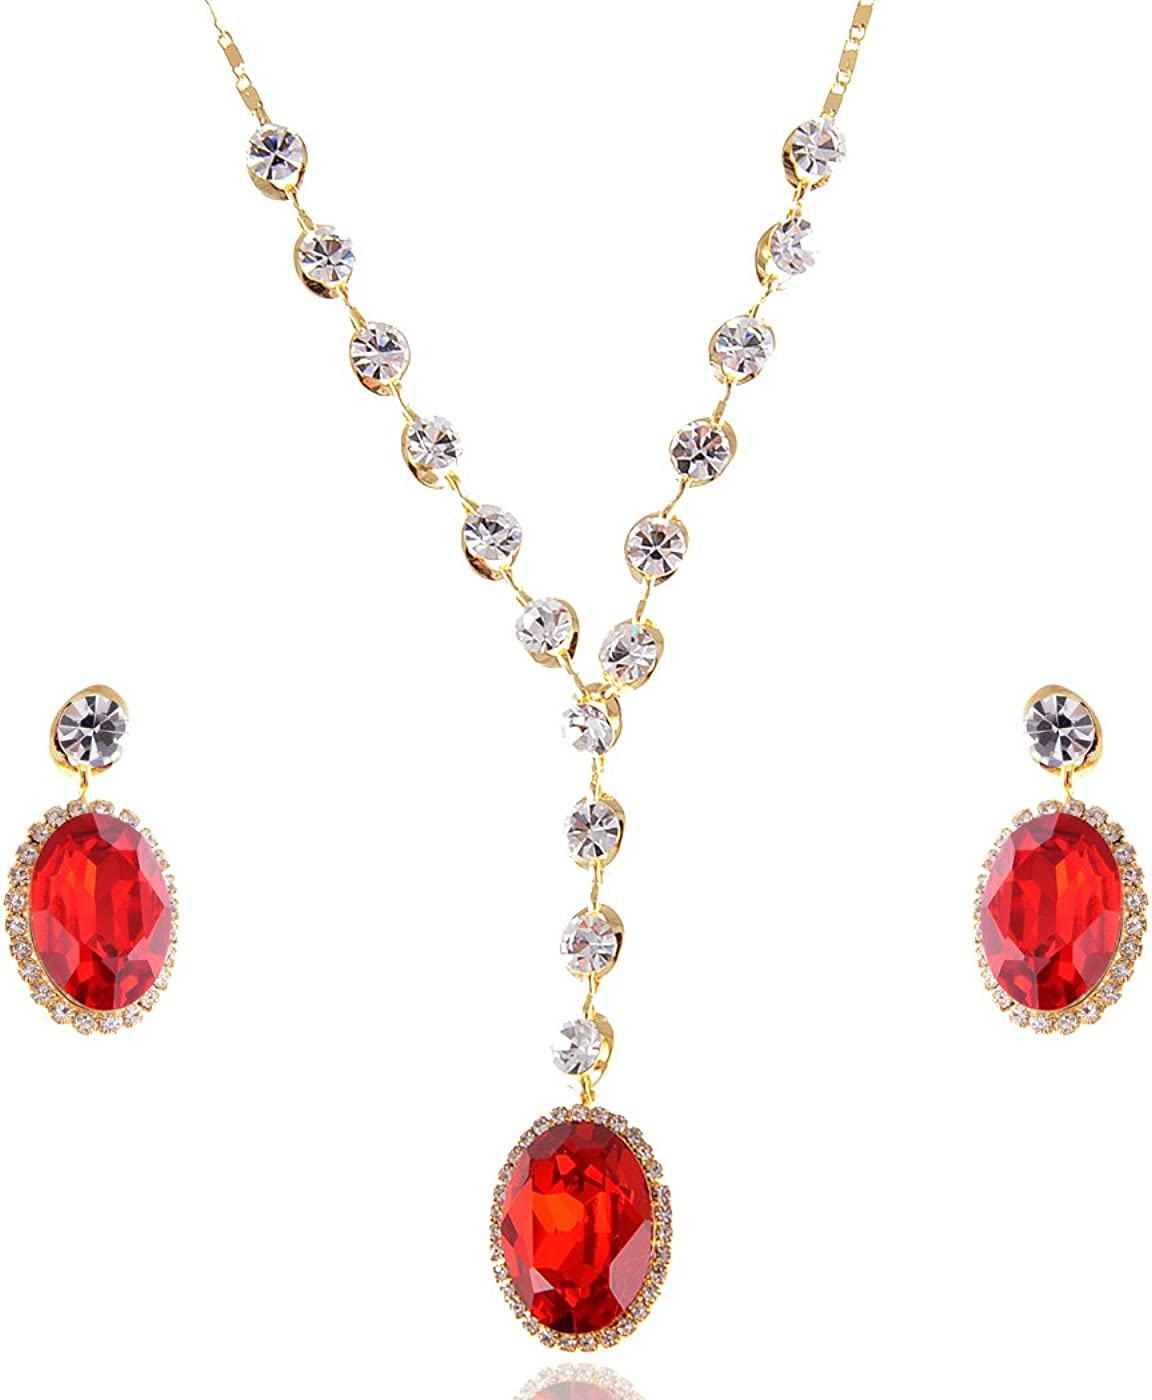 Alilang Red Ruby Clear Swarovski Crystal Rhinestone Earring Necklace Jewelry Set